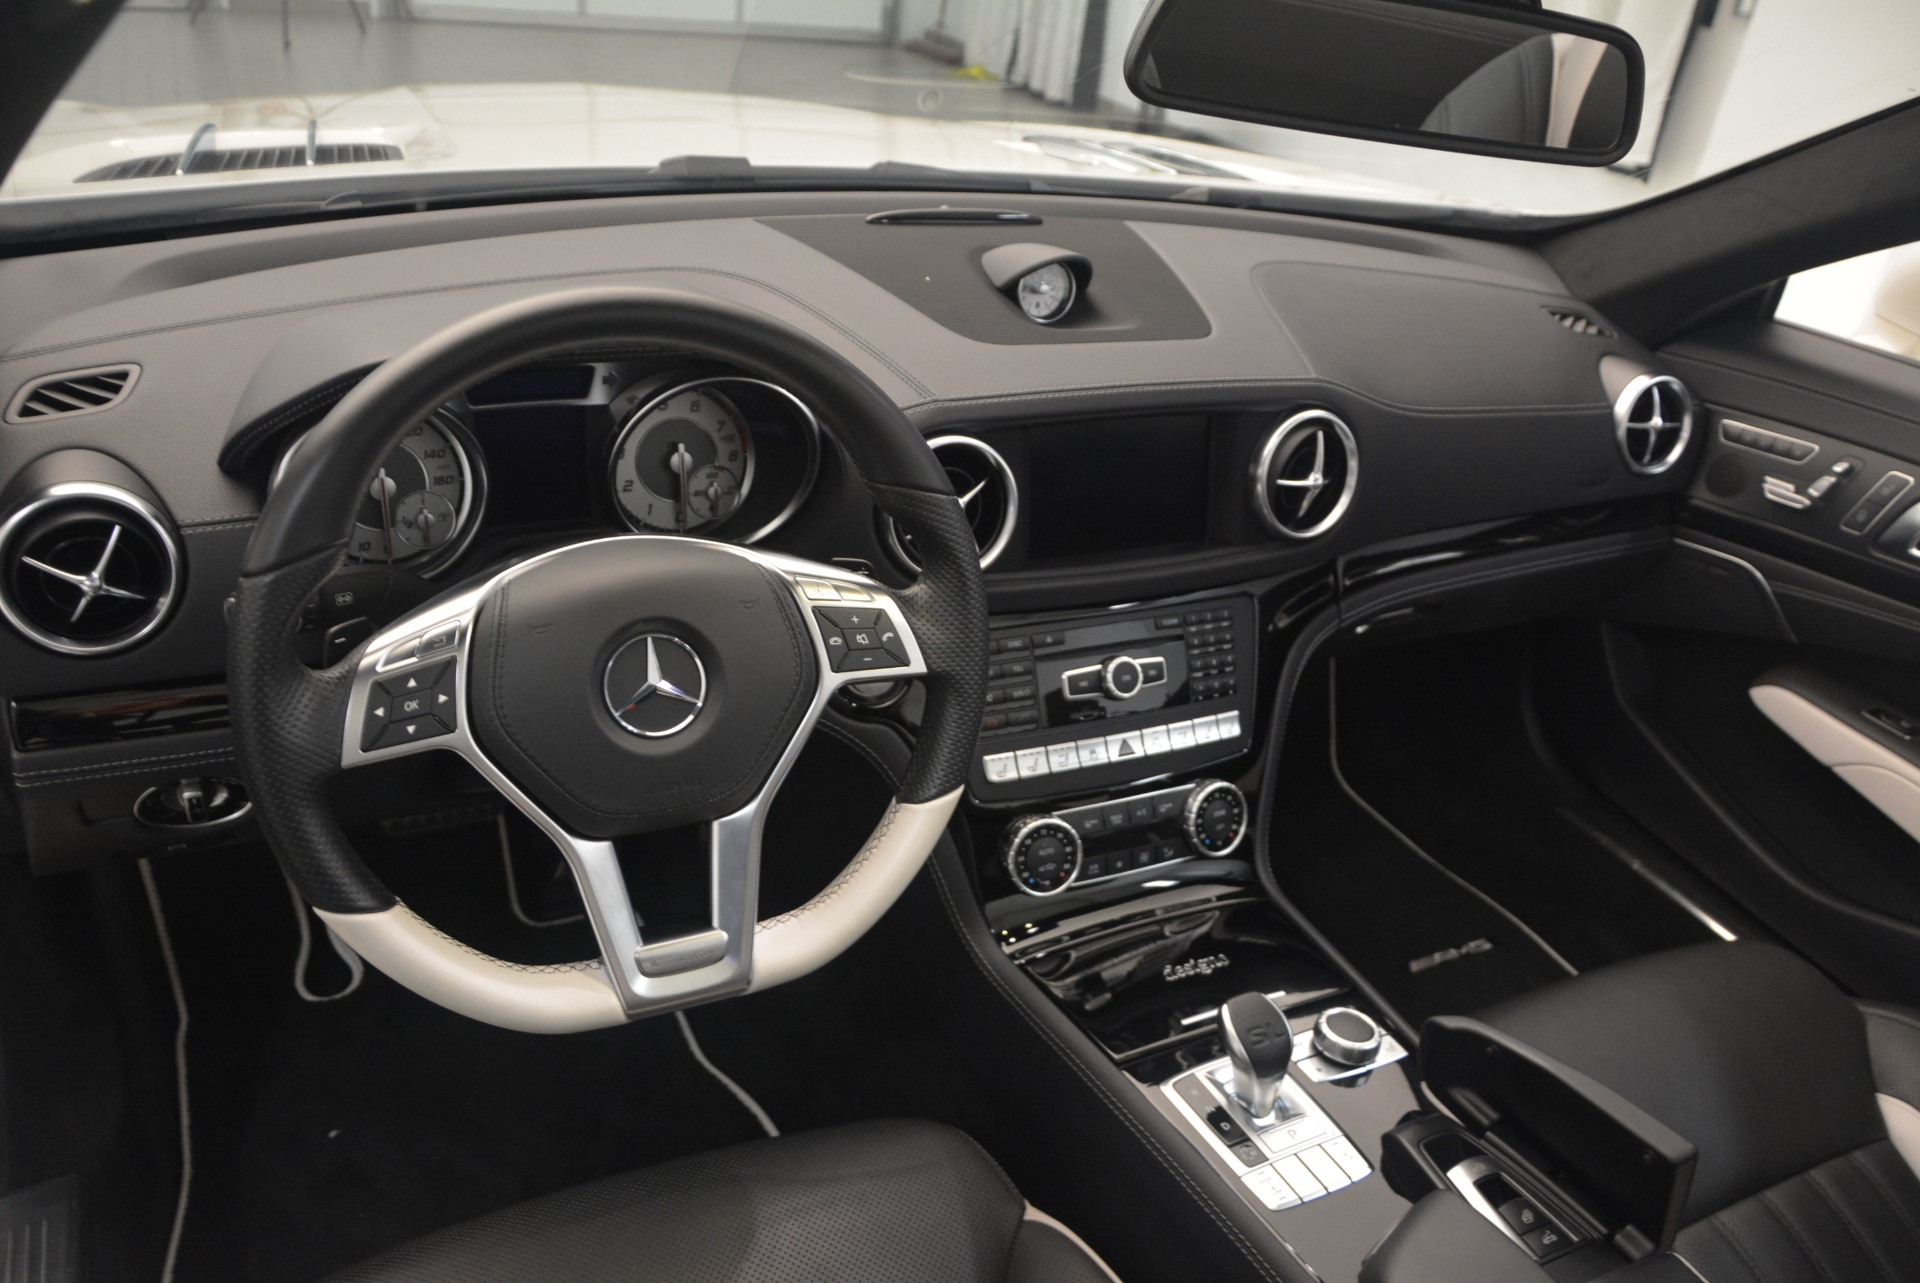 Used 2015 Mercedes Benz SL-Class SL 550 For Sale In Greenwich, CT 1261_p31